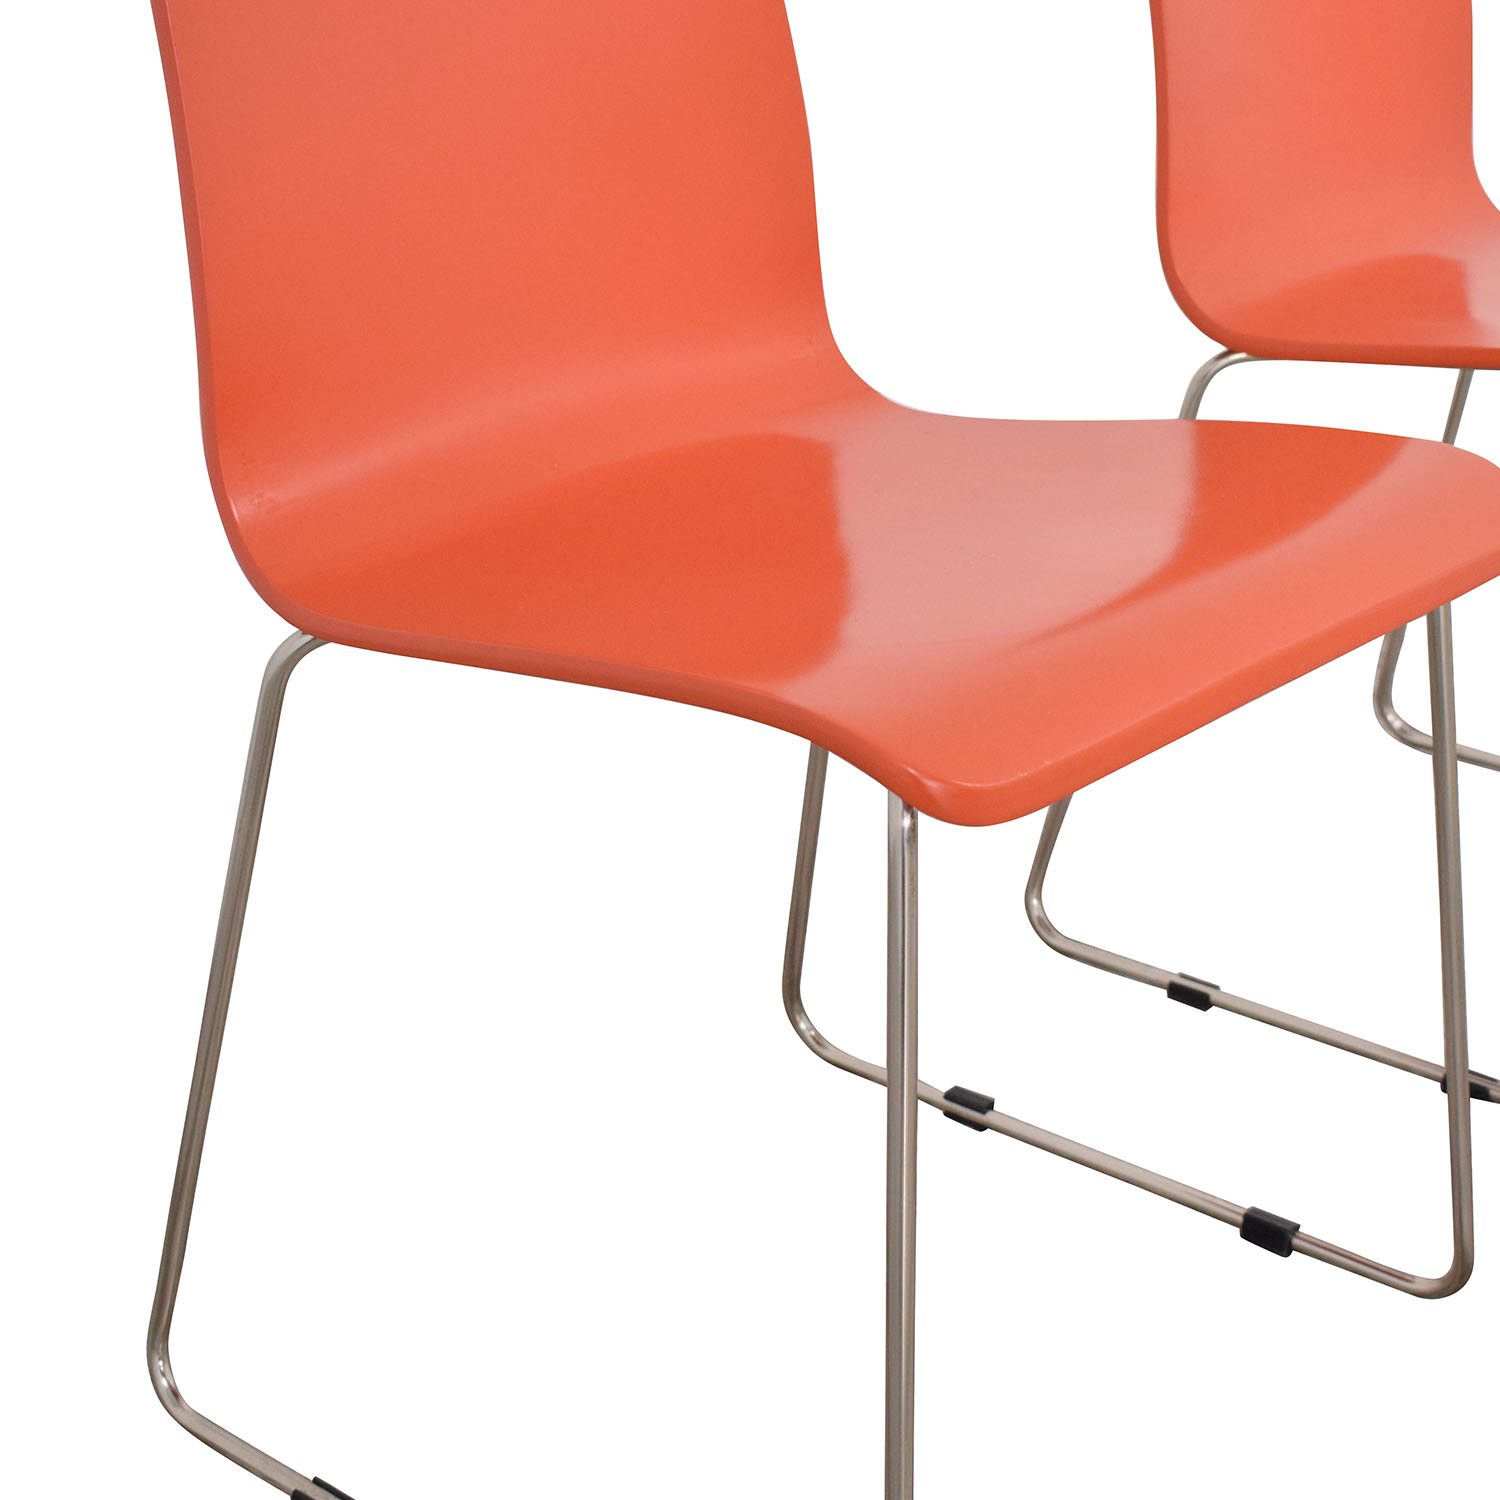 CB2 Side Chairs / Dining Chairs